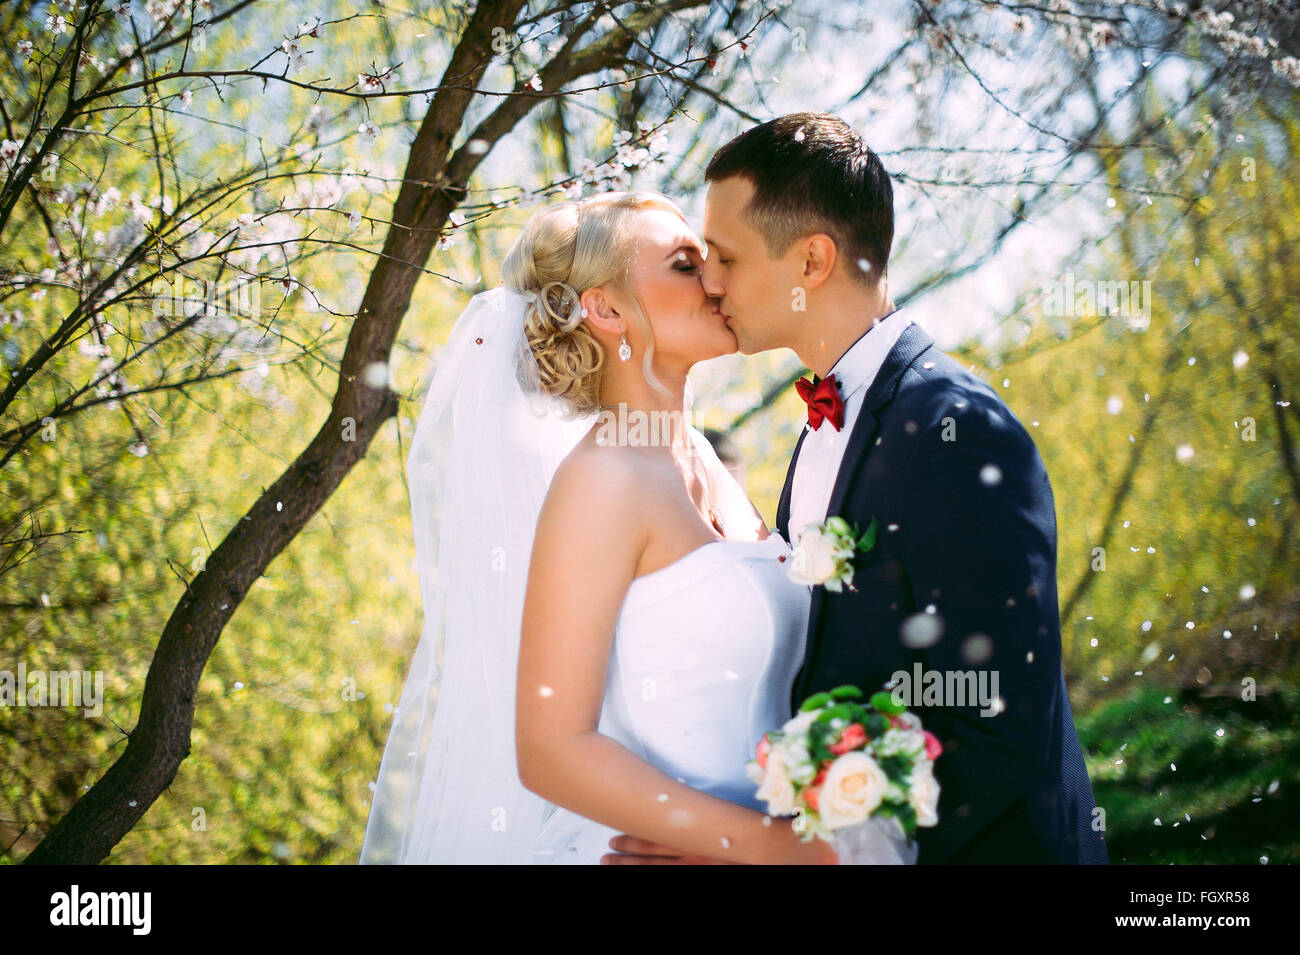 Kissing wedding couple in spring nature close-up portrait. Kissing wedding couple in spring nature close-up portrait - Stock Image